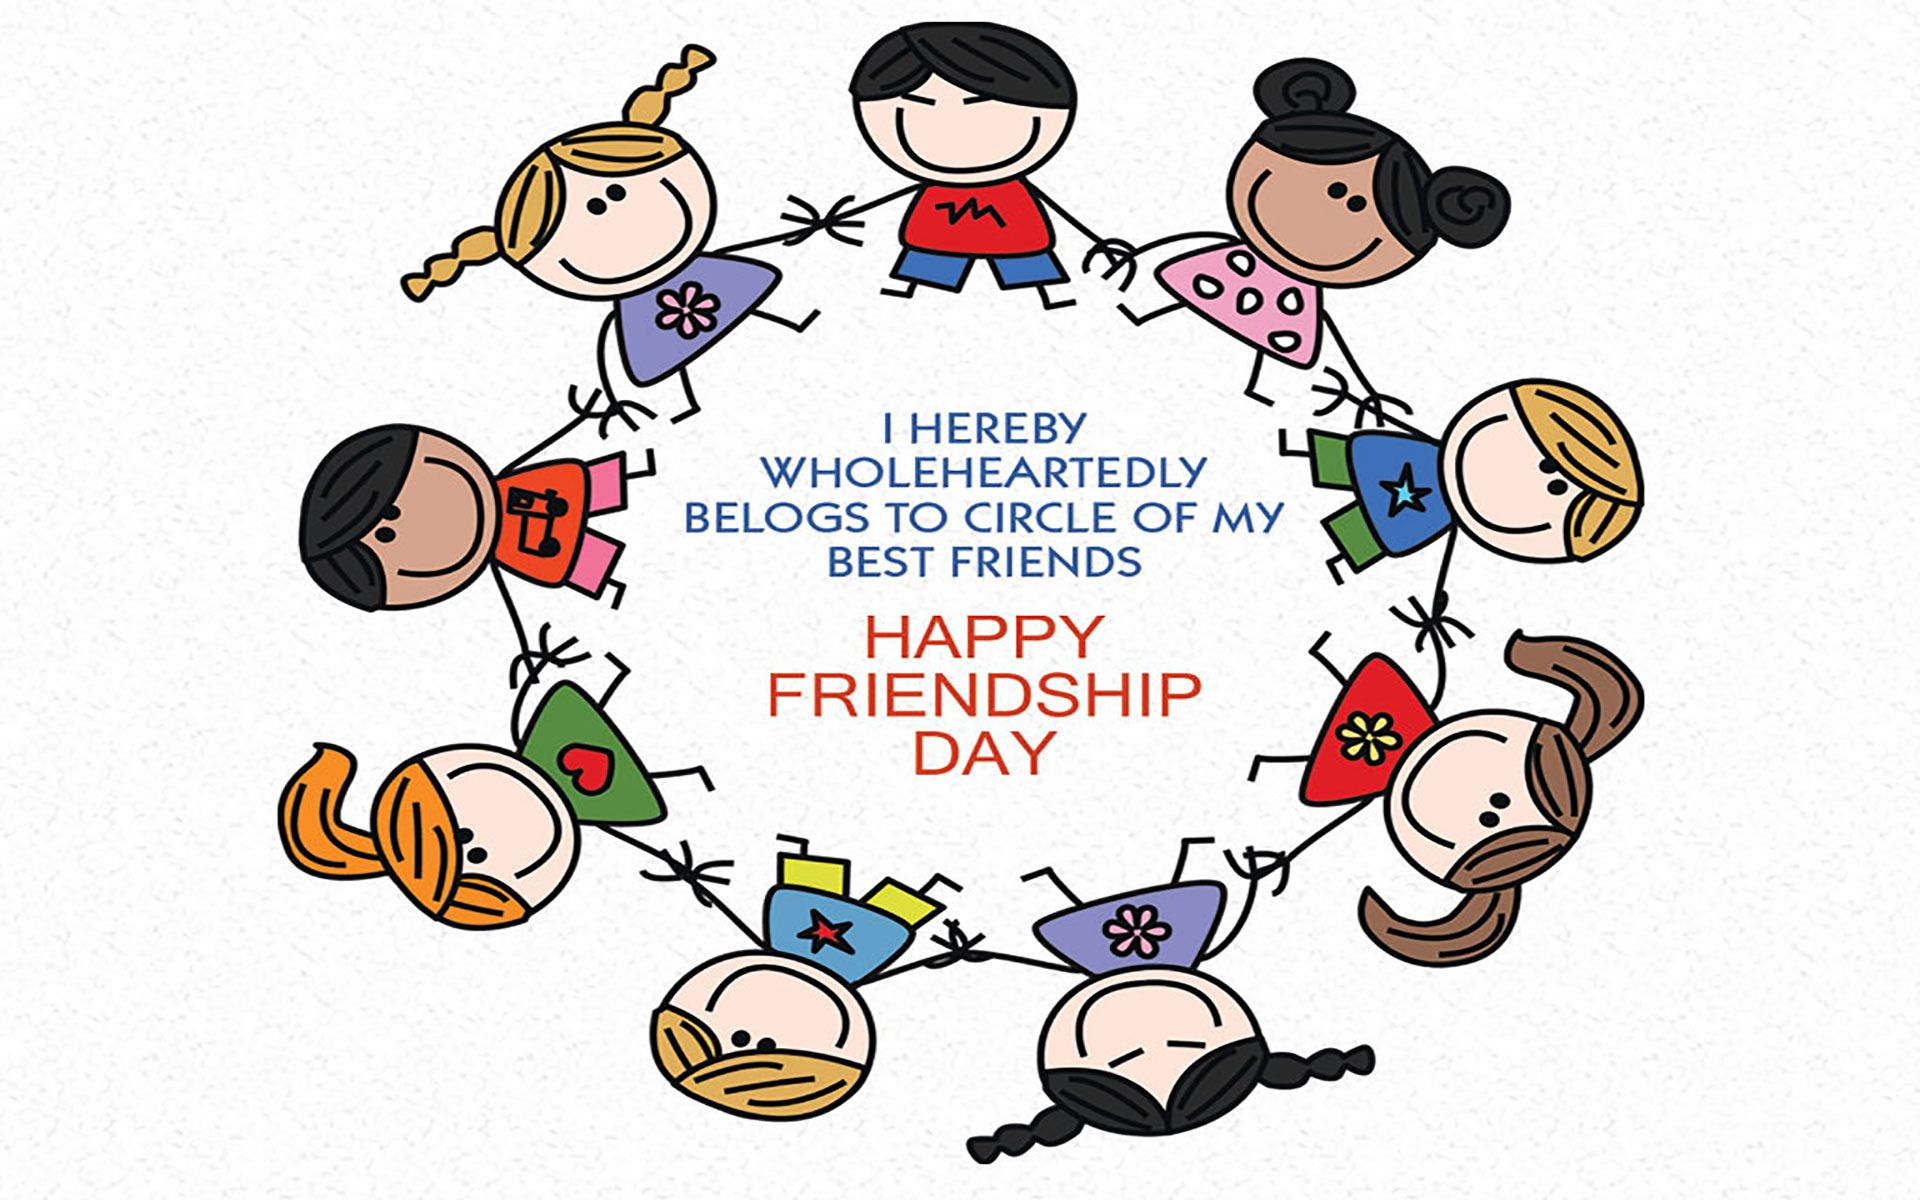 20 Happy Friendship Day Wallpapers With Quotes Friendship Day Wallpaper Happy Friendship Day Happy Friendship